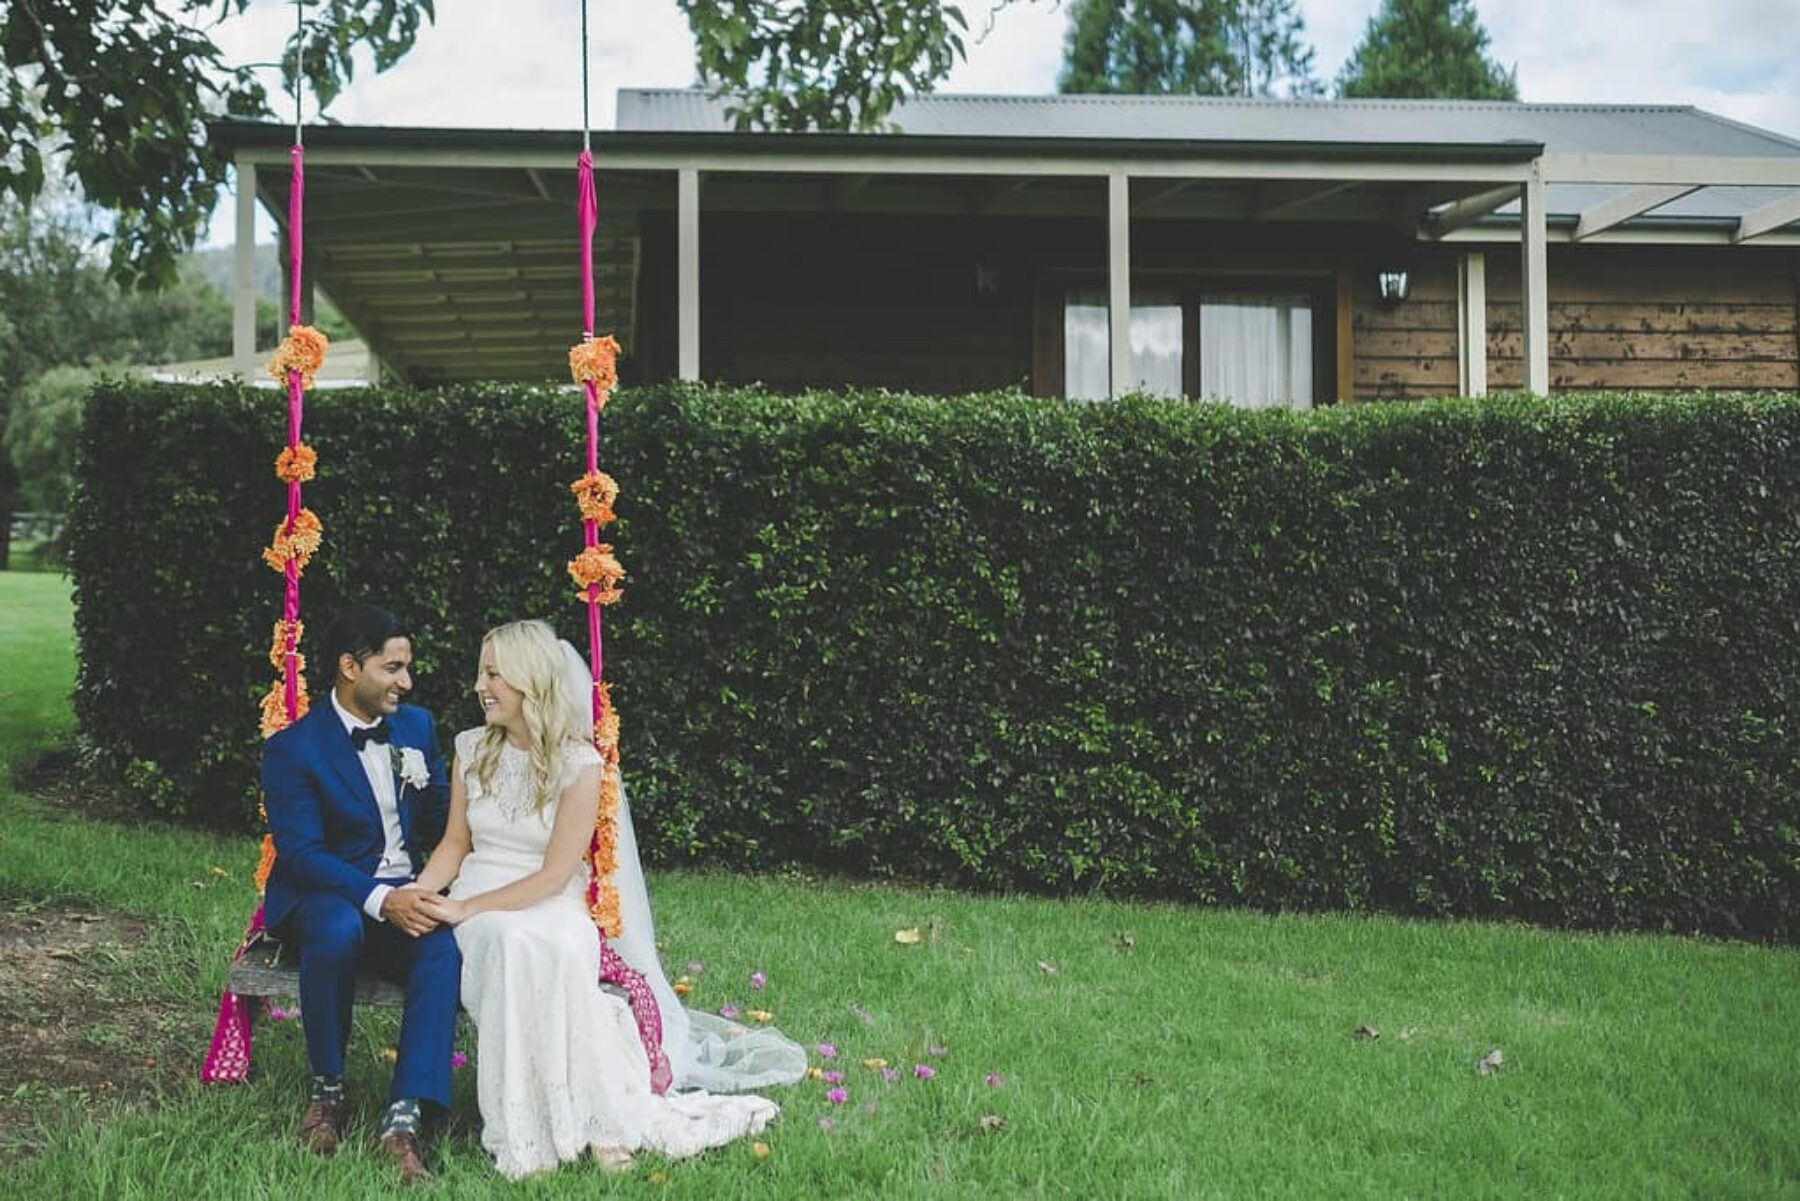 bride and groom on swing